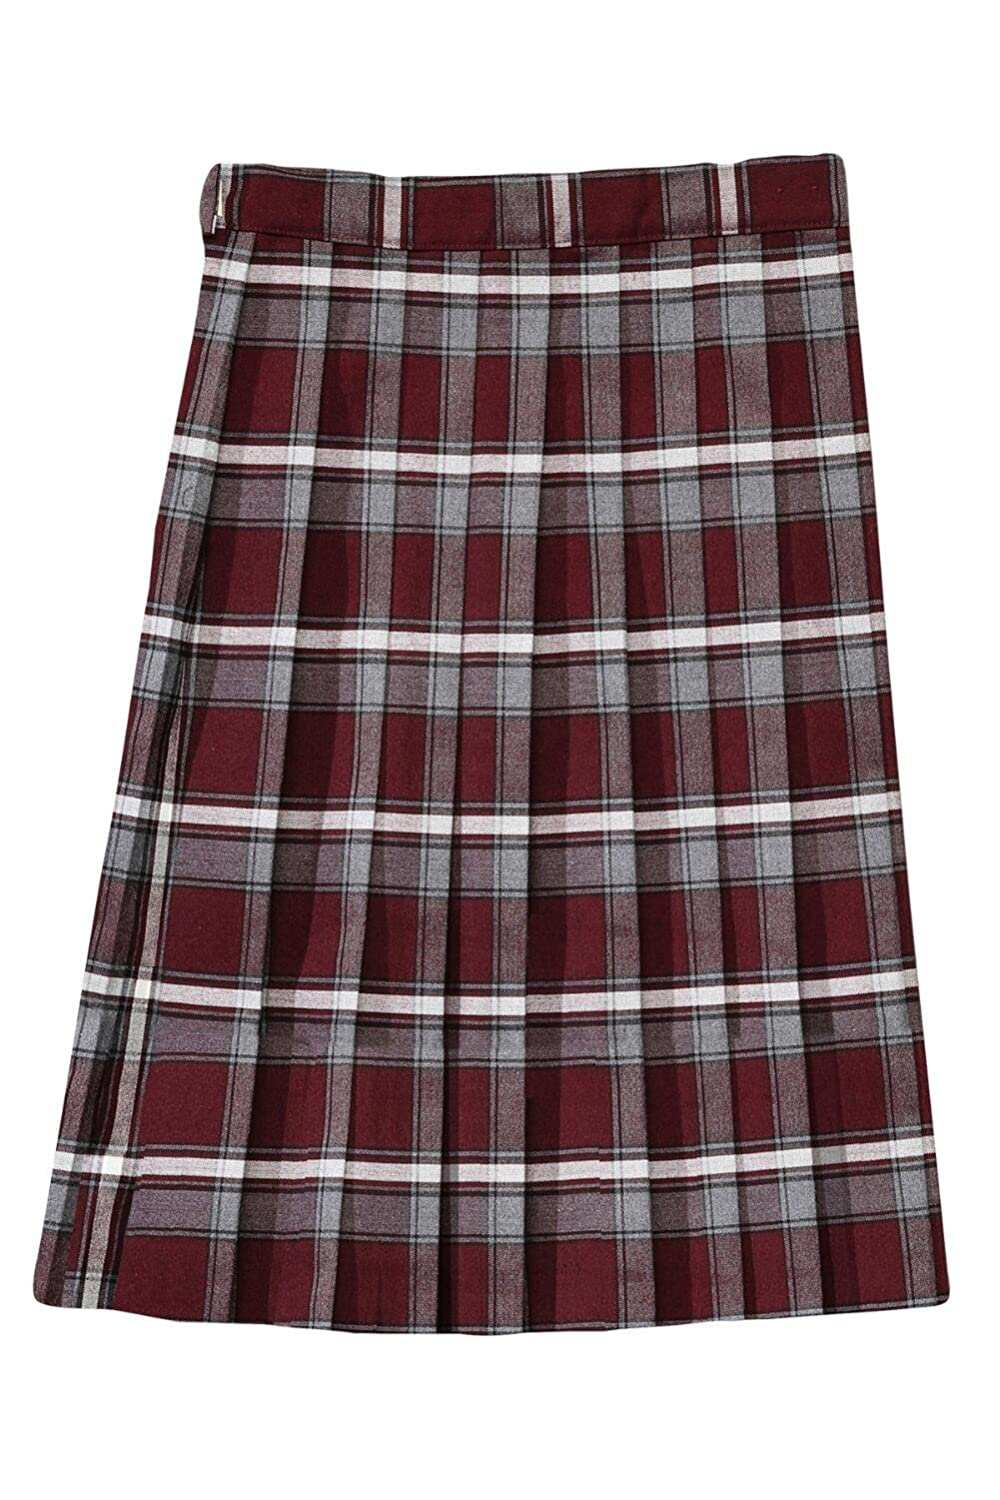 French Toast Below The Knee Plaid Pleated Skirt(Plus Size) French Toast School Uniforms 1575U